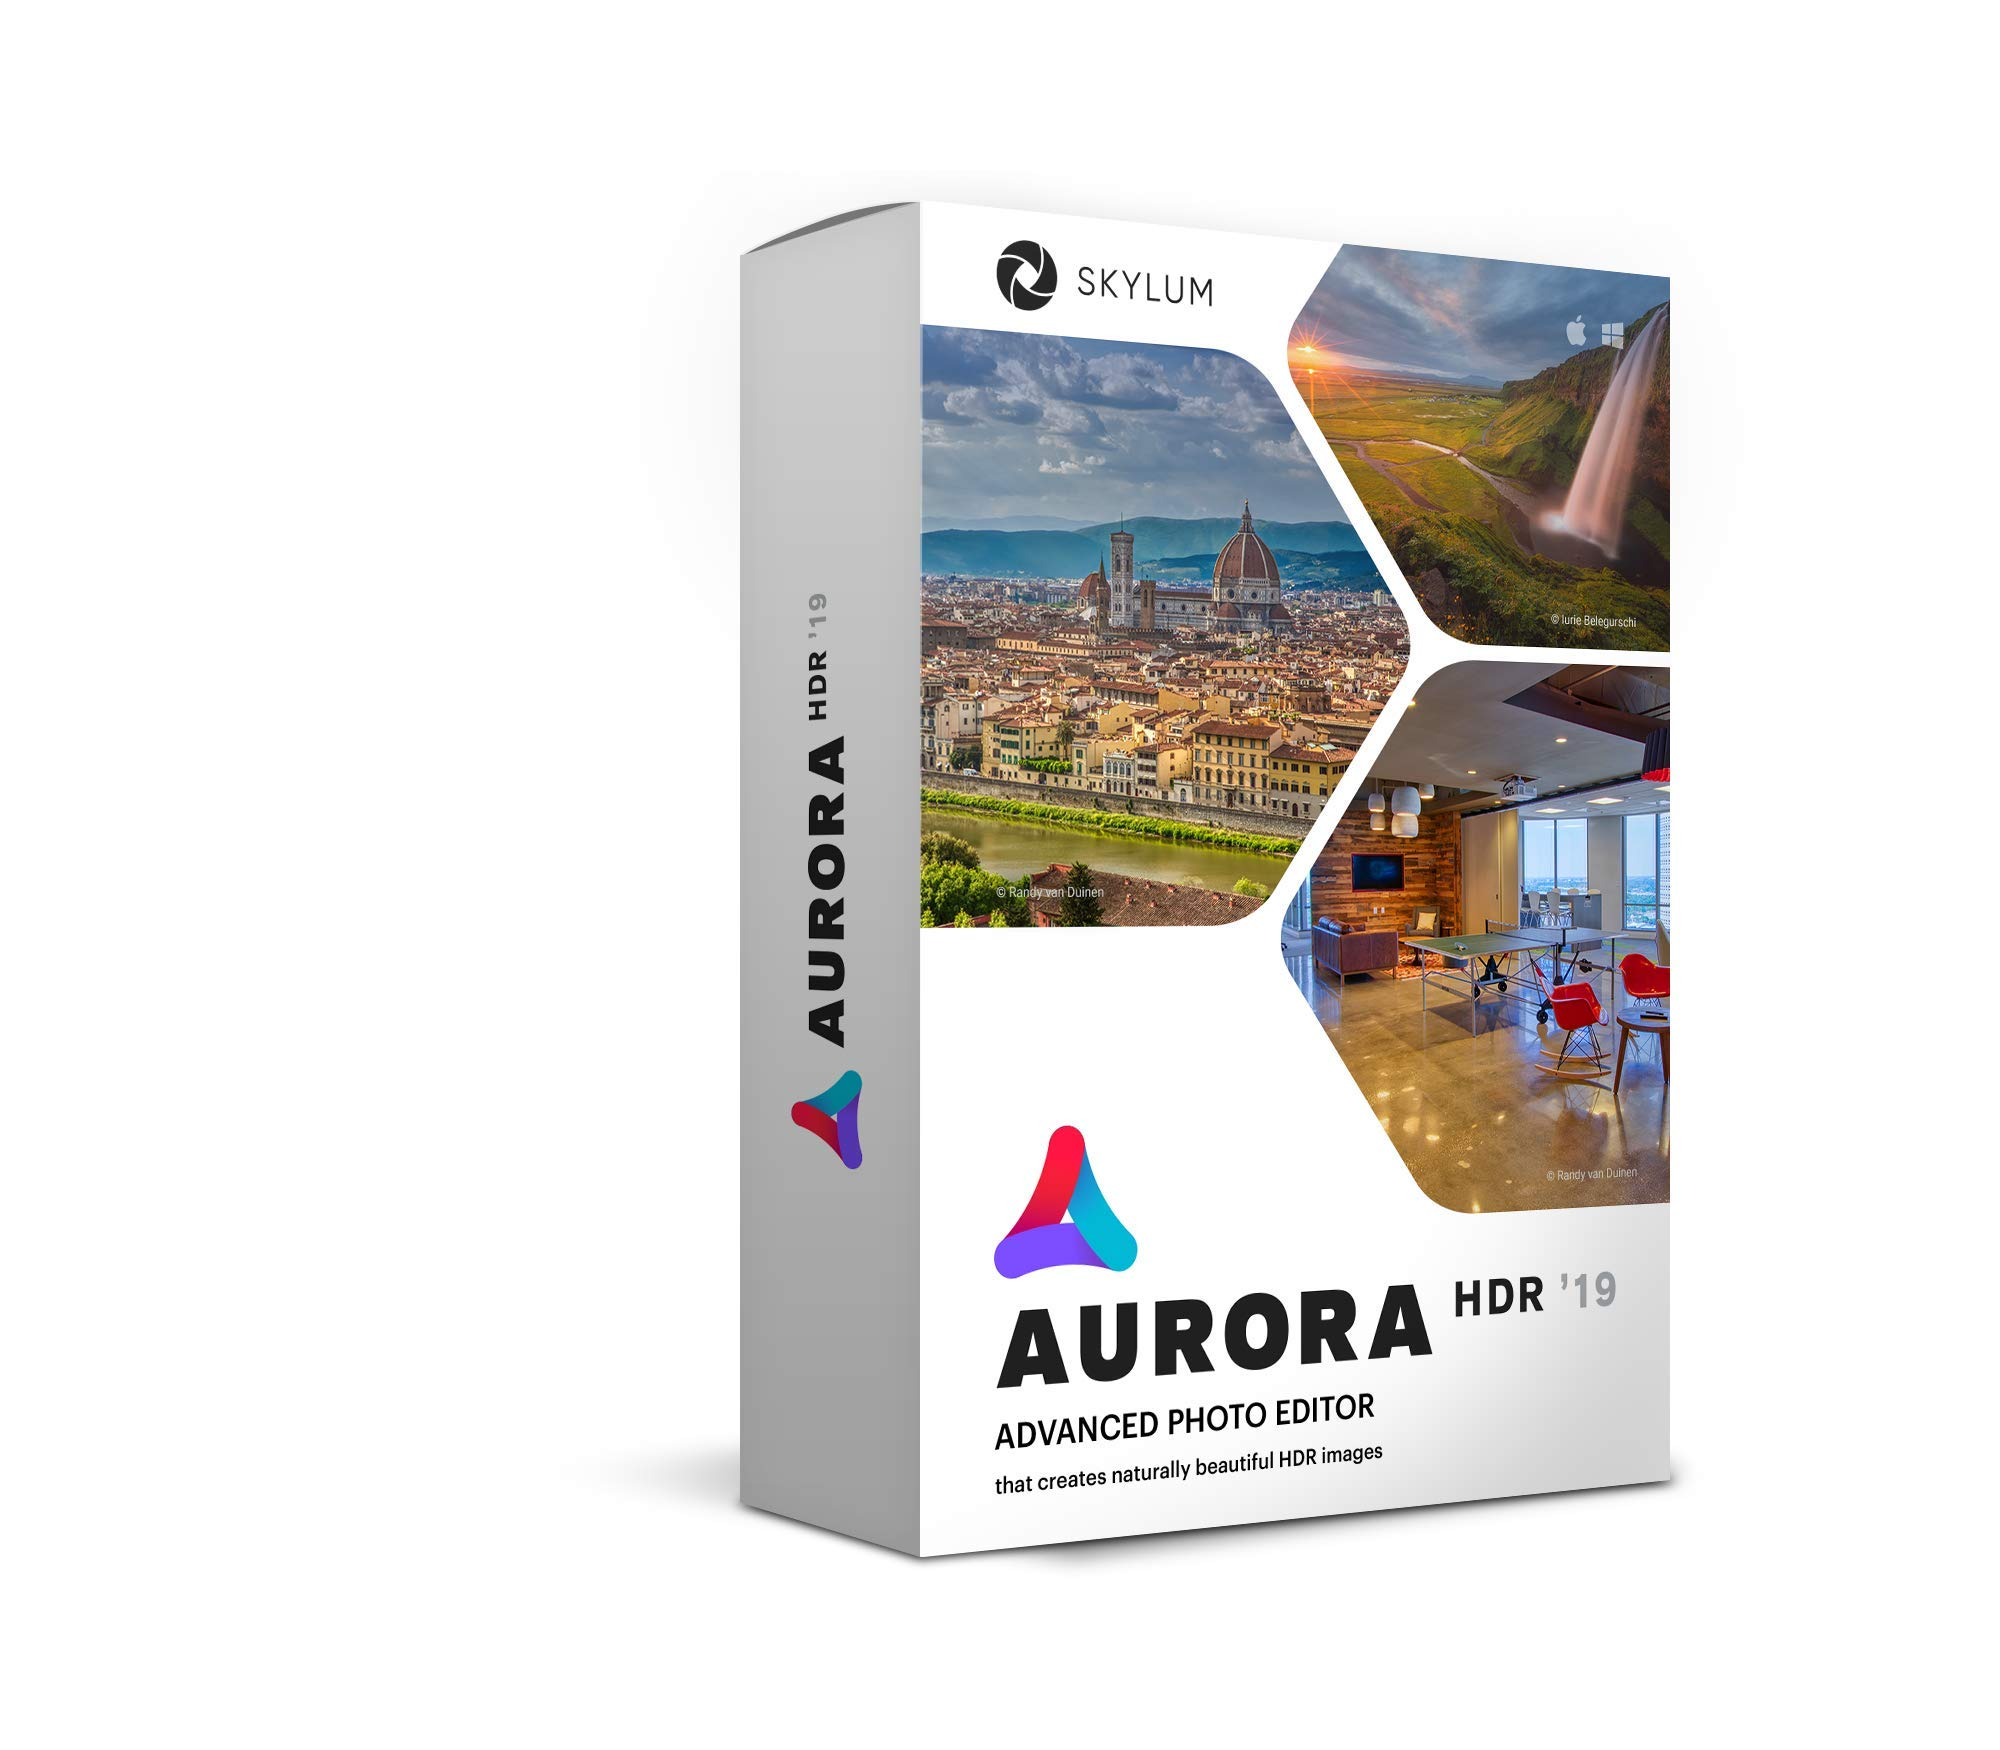 Aurora HDR 2019 - HDR Image Enhancing Program | Amplify Your Images with State-of-the-Art High Dynamic Range Photography Software by Skylum Software | For Mac or PC by Skylum